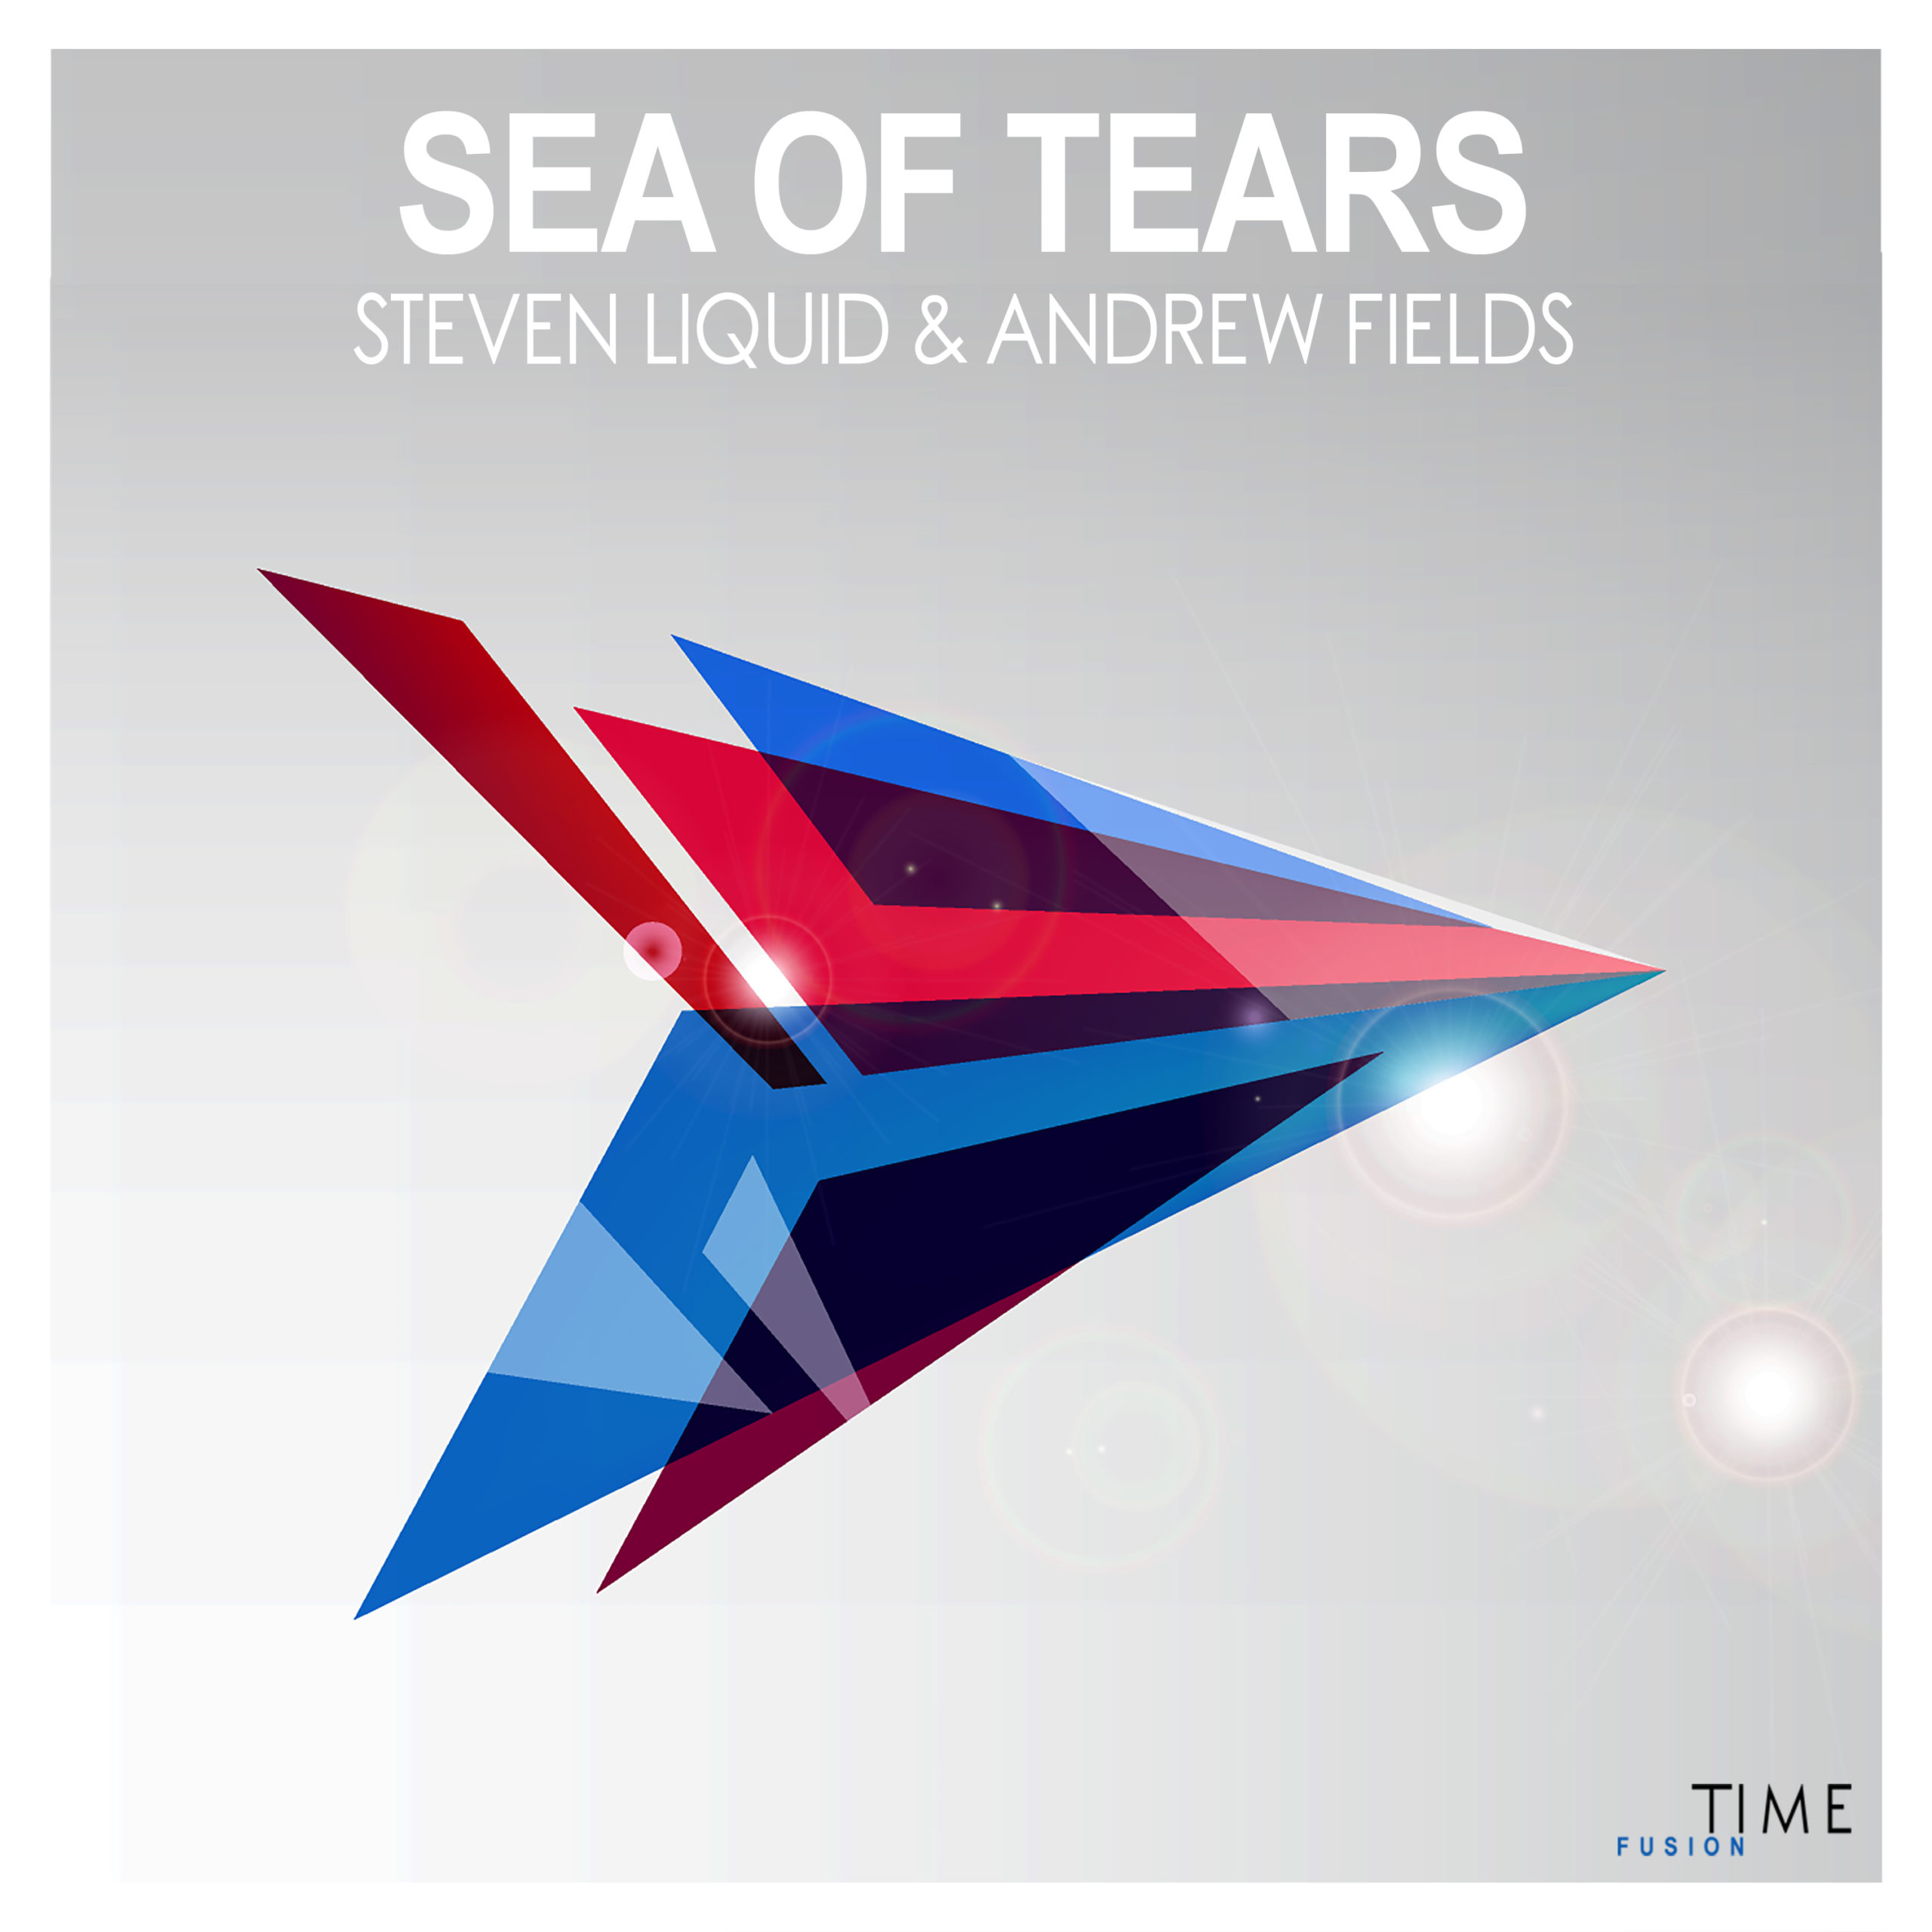 https://www.ultimate-house-records.com/wp-content/uploads/2020/10/tf136-Sea_of_tears-Cover-3000px-scaled.jpg